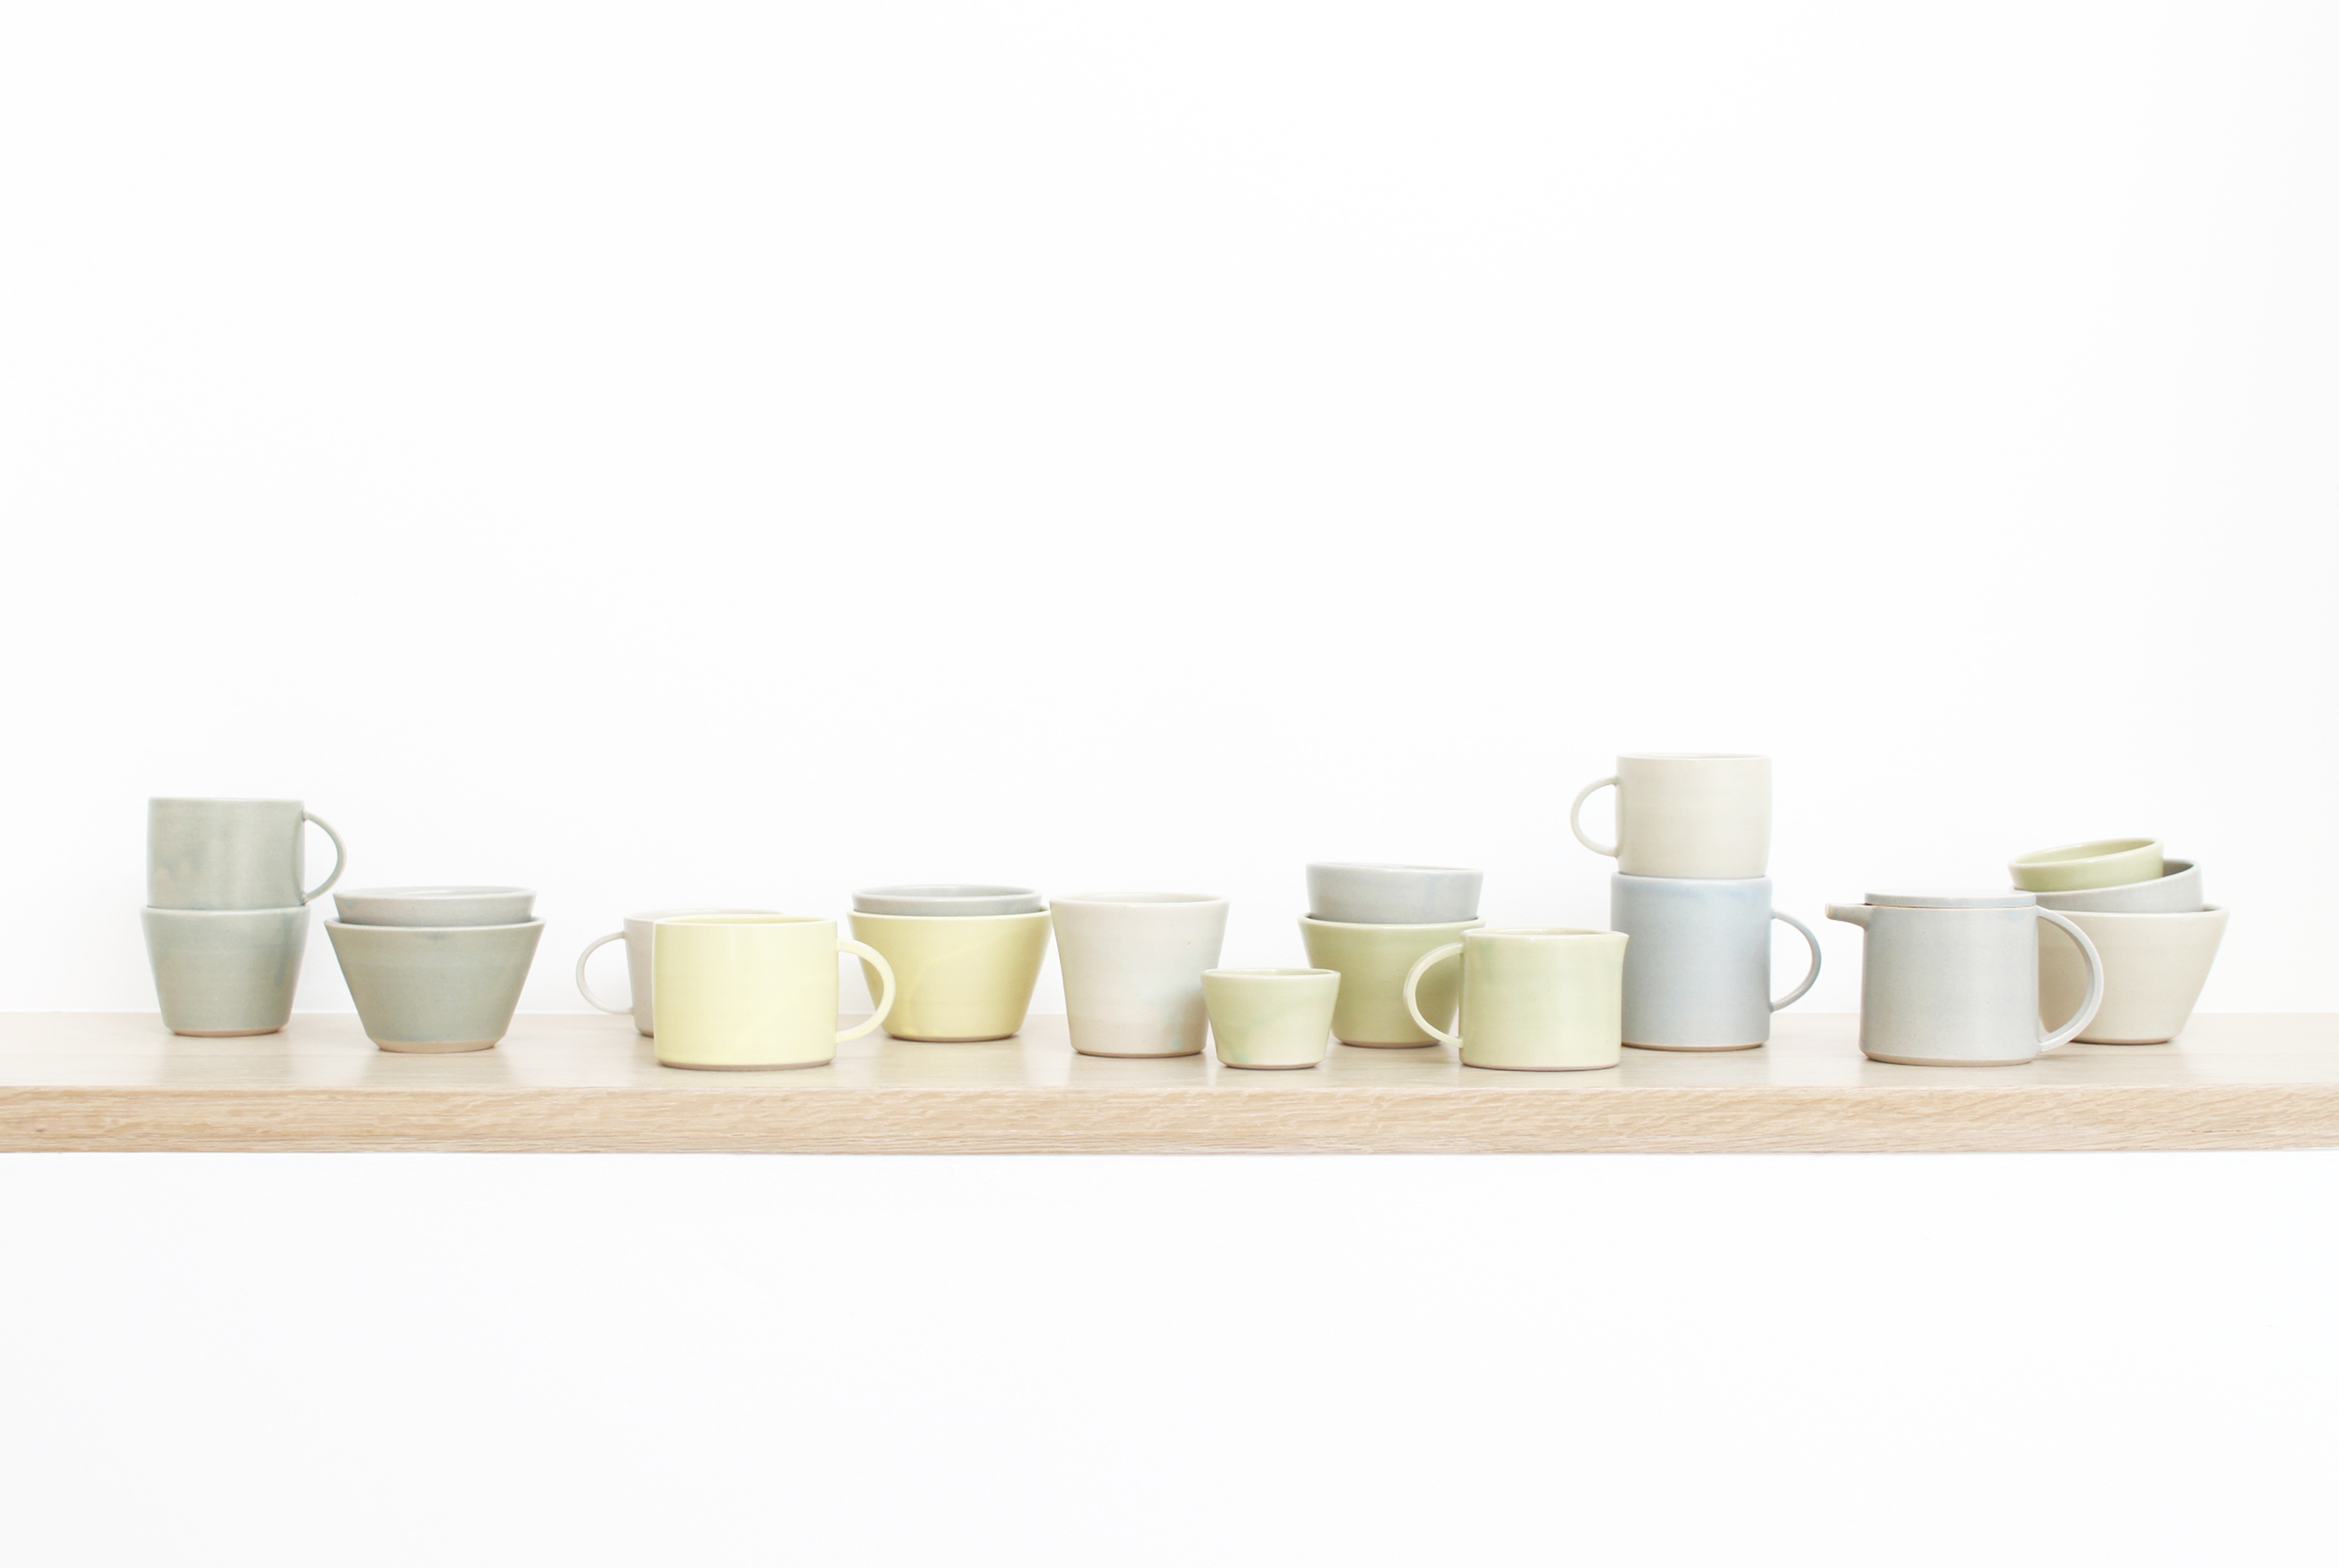 Tableware for Guldagergaard International ceramic research centre, Denmark in 2013. As part of a residency programme '100 plates'.